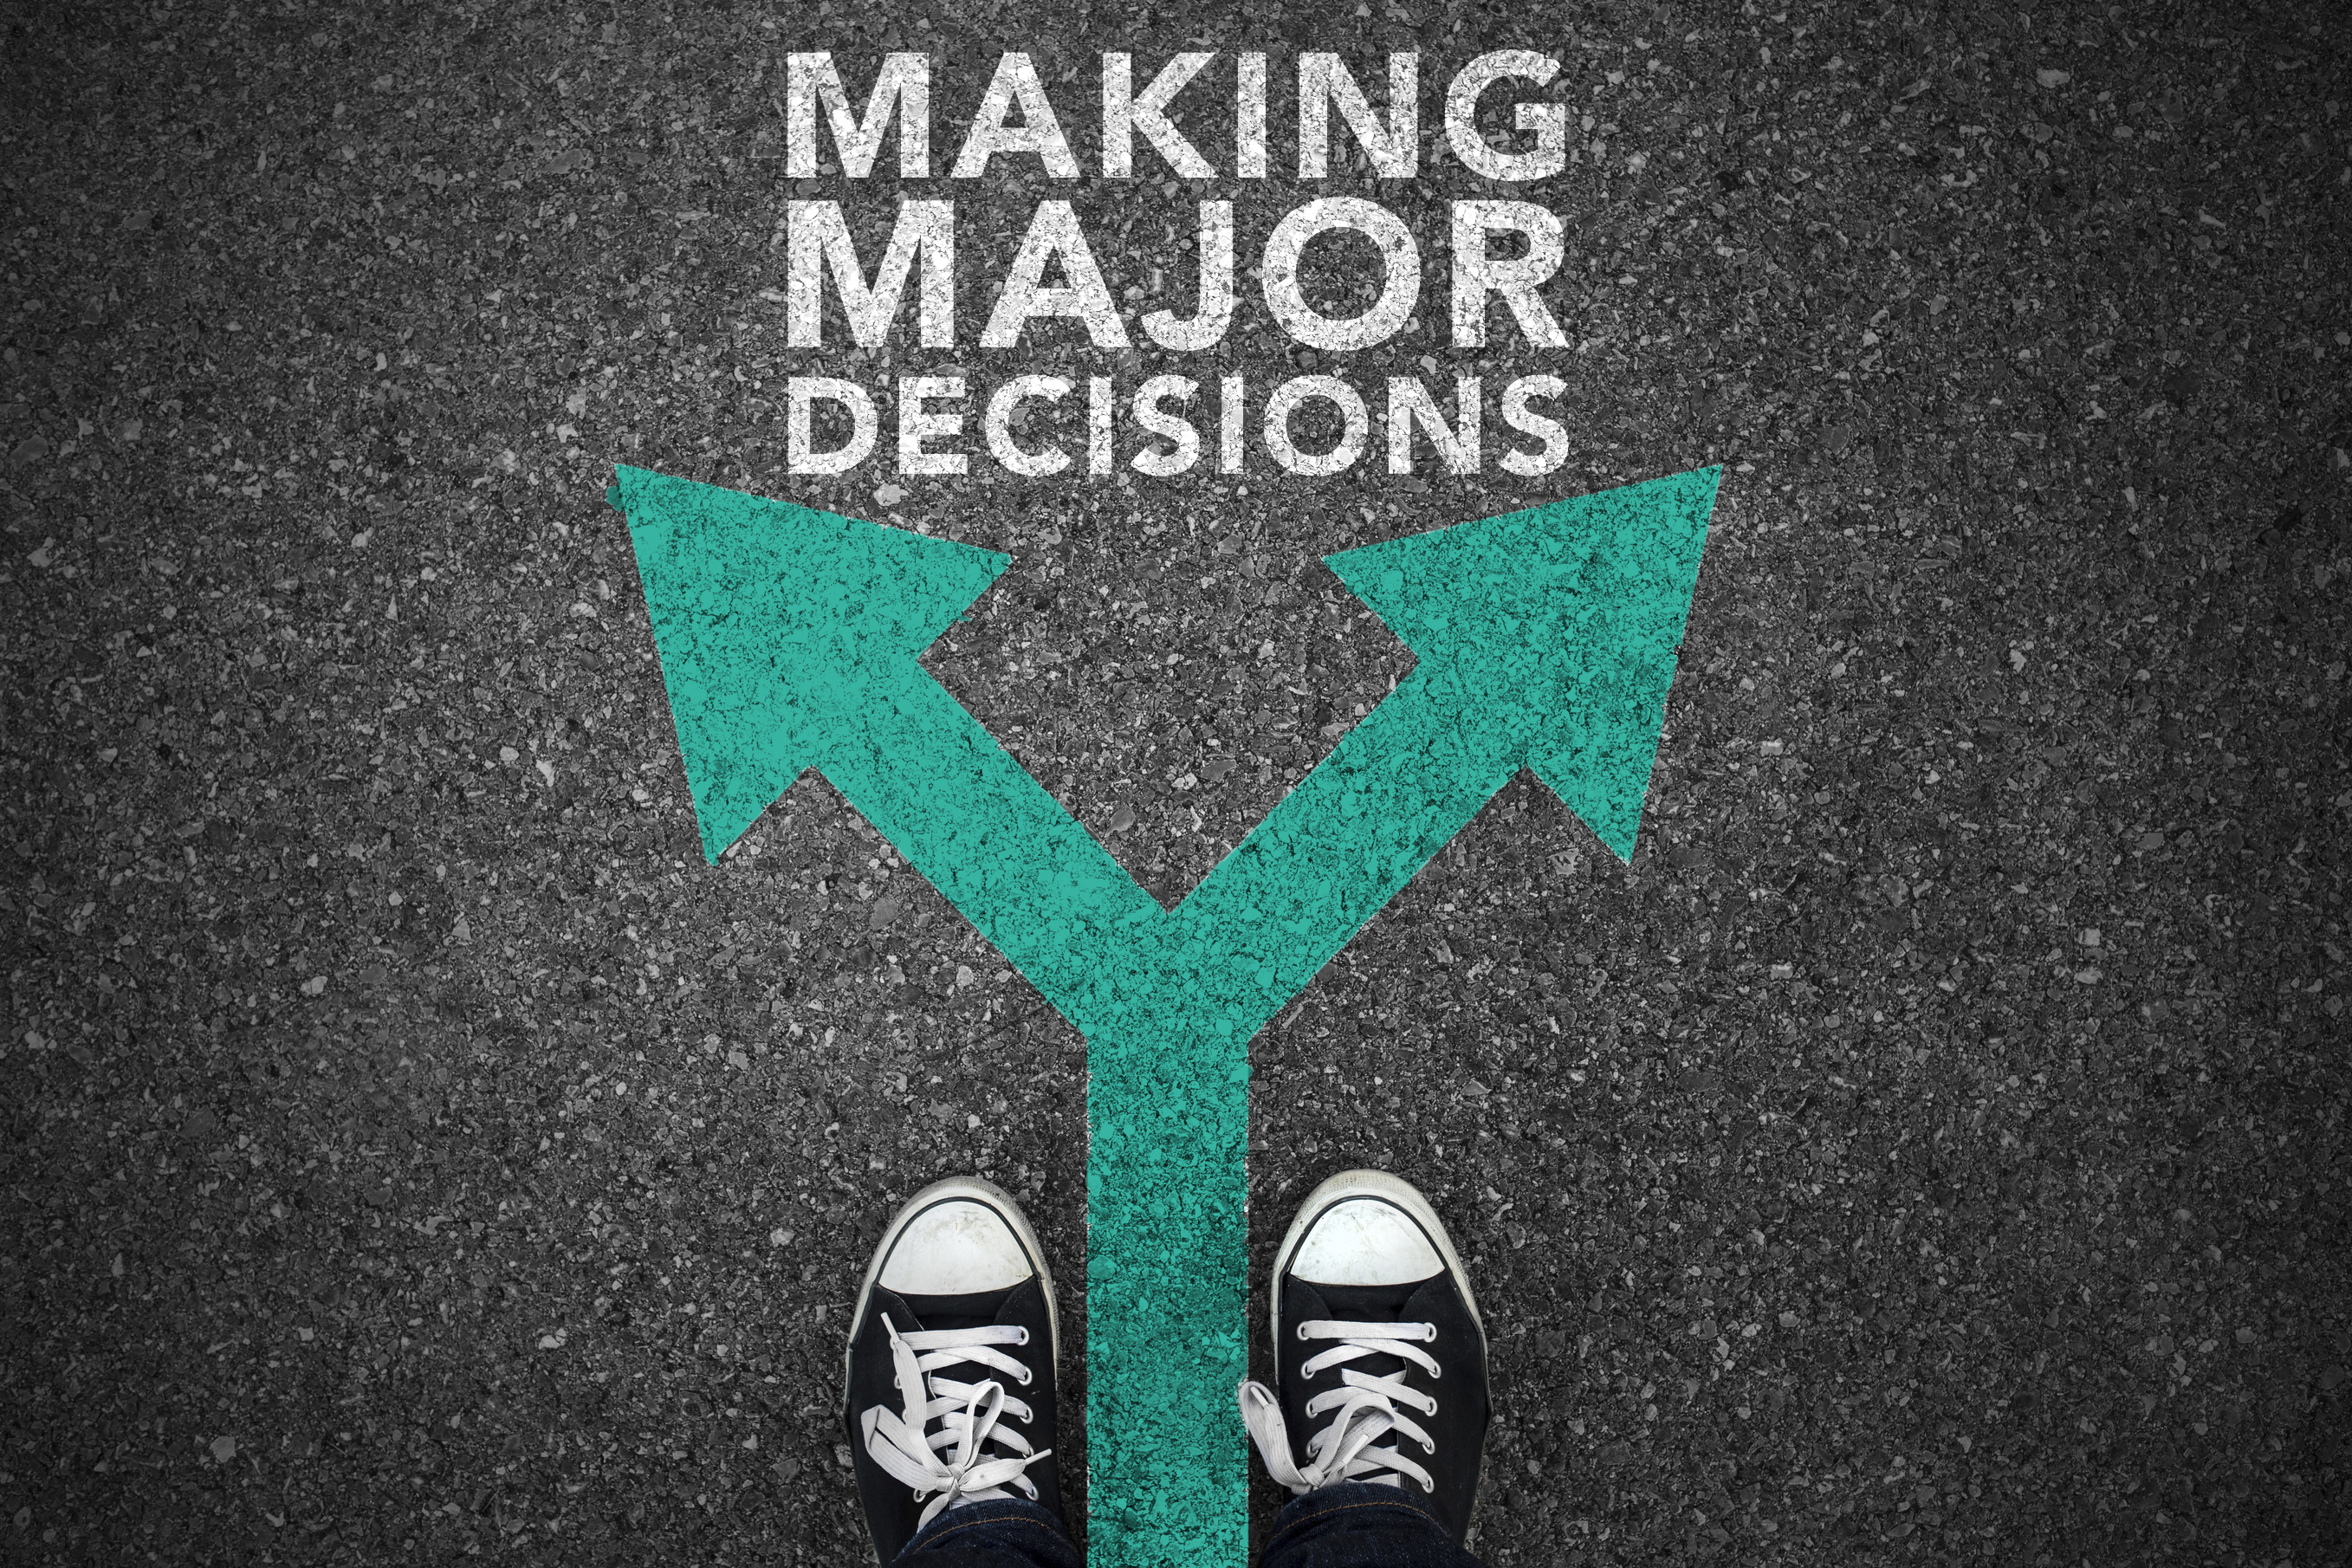 major making decisions course